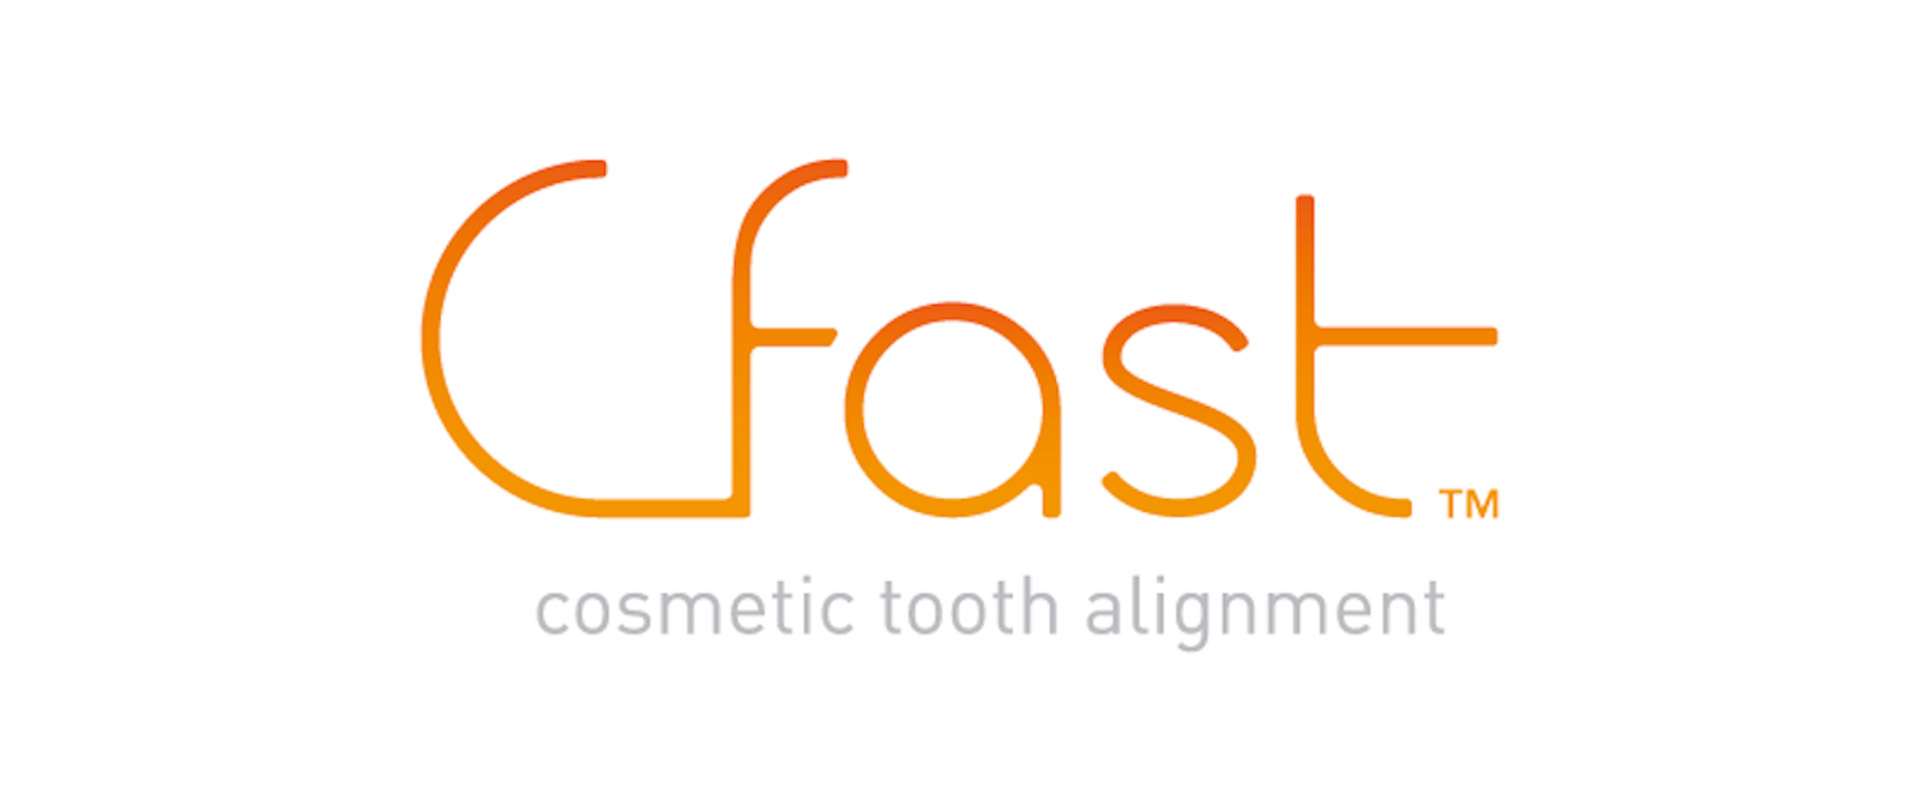 Cfast - High street Dental Care